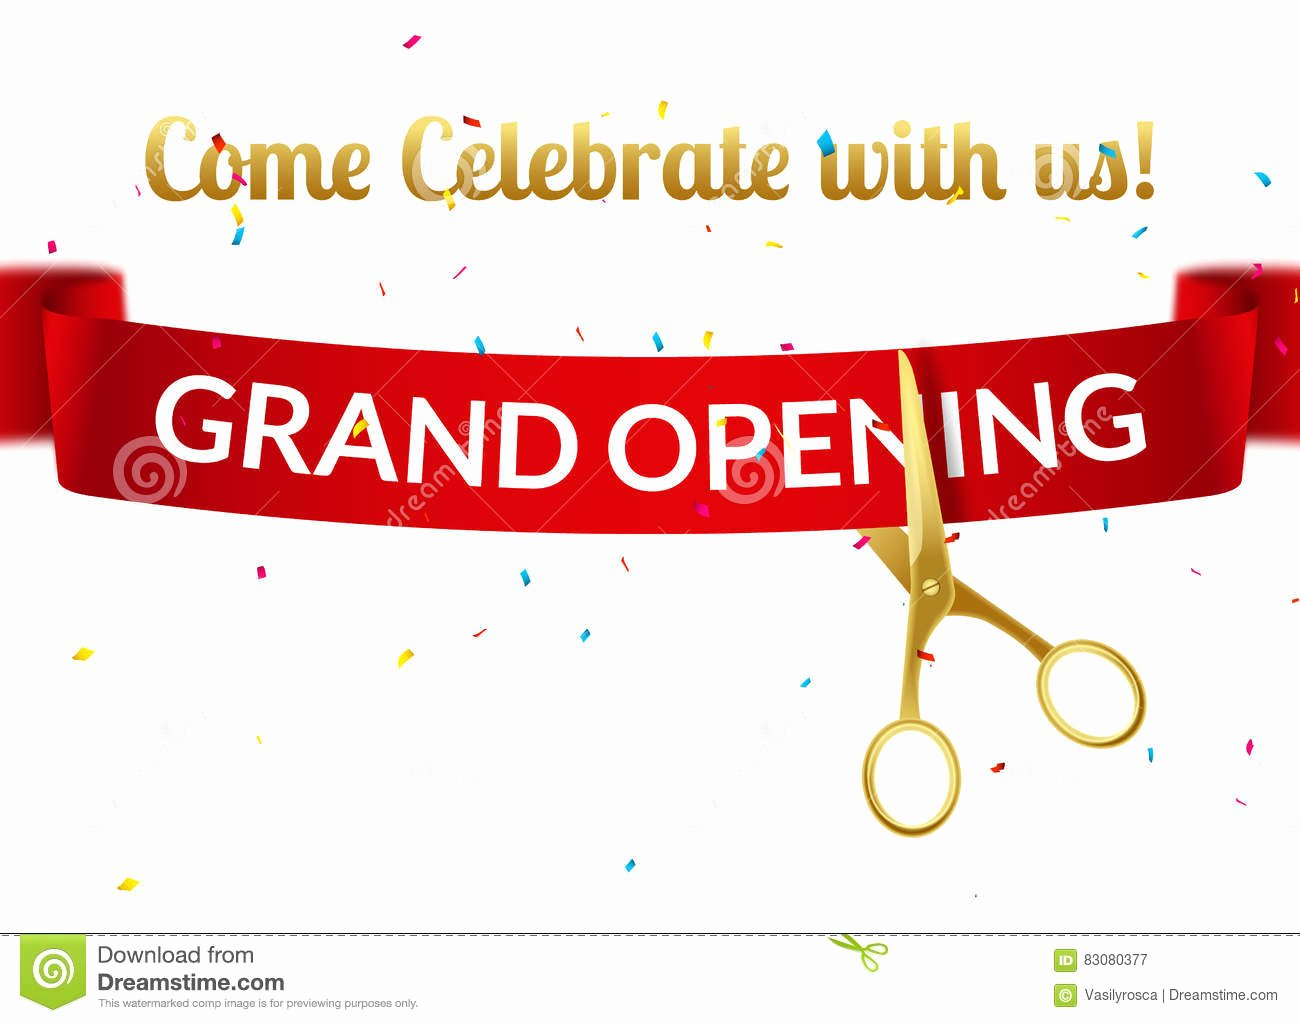 Ribbon Cutting Invite Template Inspirational Grand Opening Invitation Template Free Templates Data